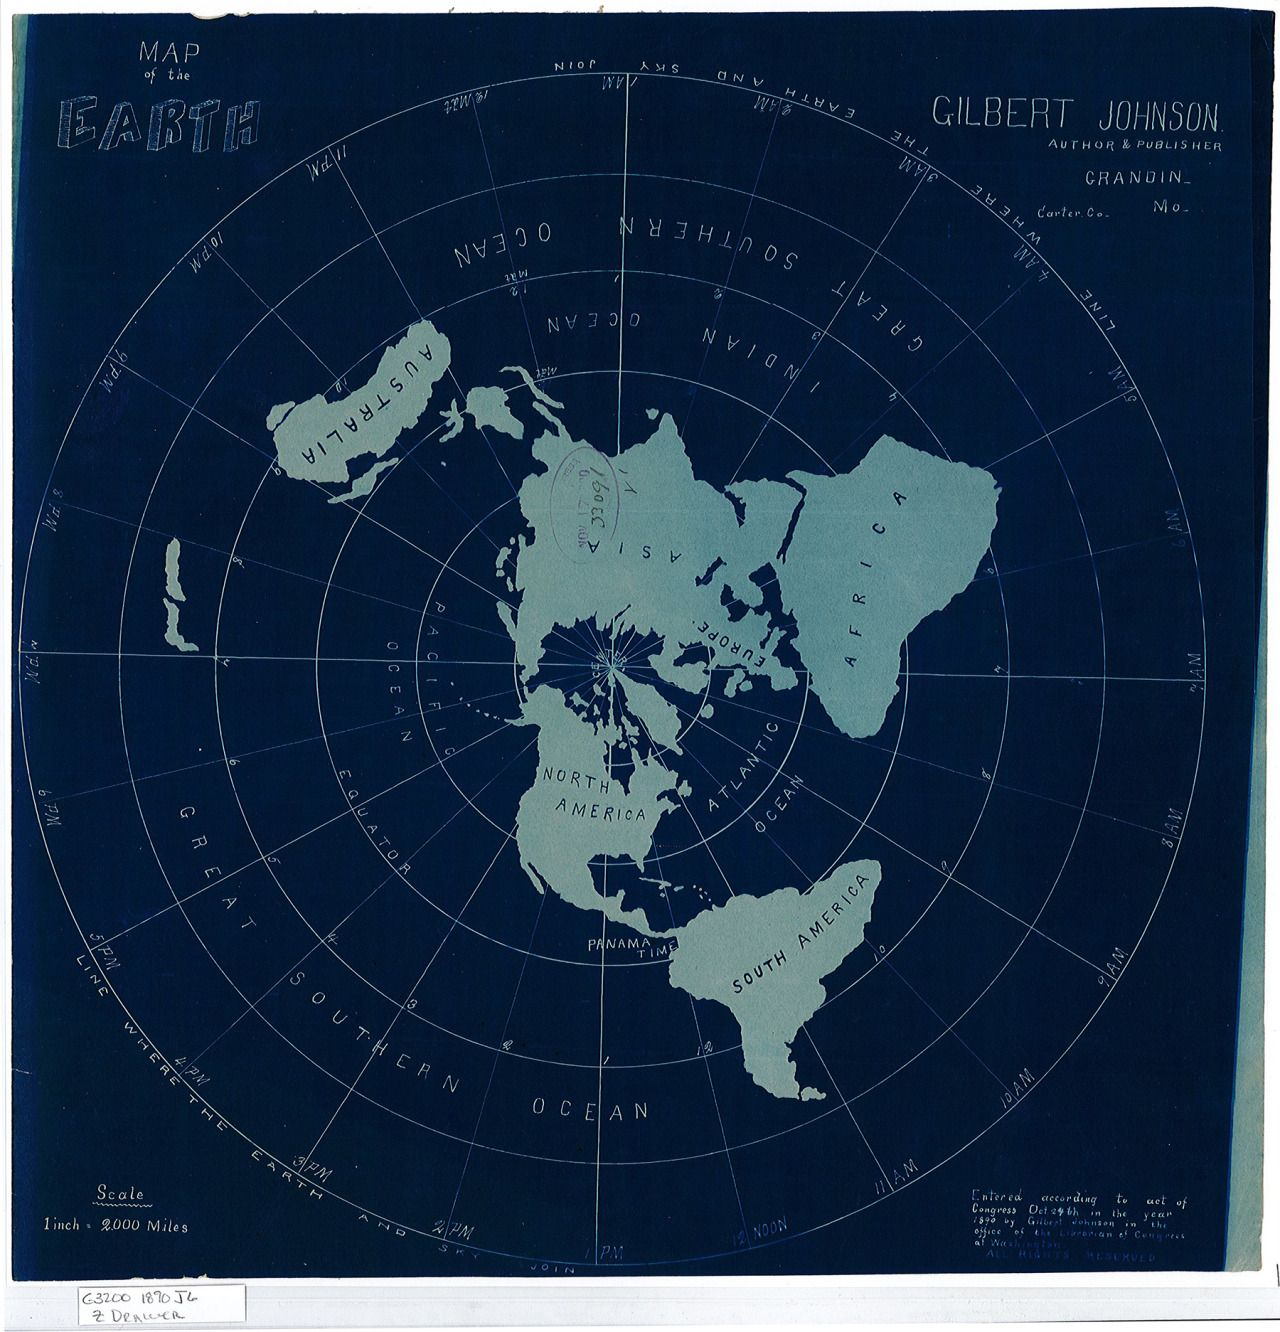 Flat earth map created by gilbert johnson in 1890 flatearth flat earth map created by gilbert johnson in 1890 flatearth gumiabroncs Gallery